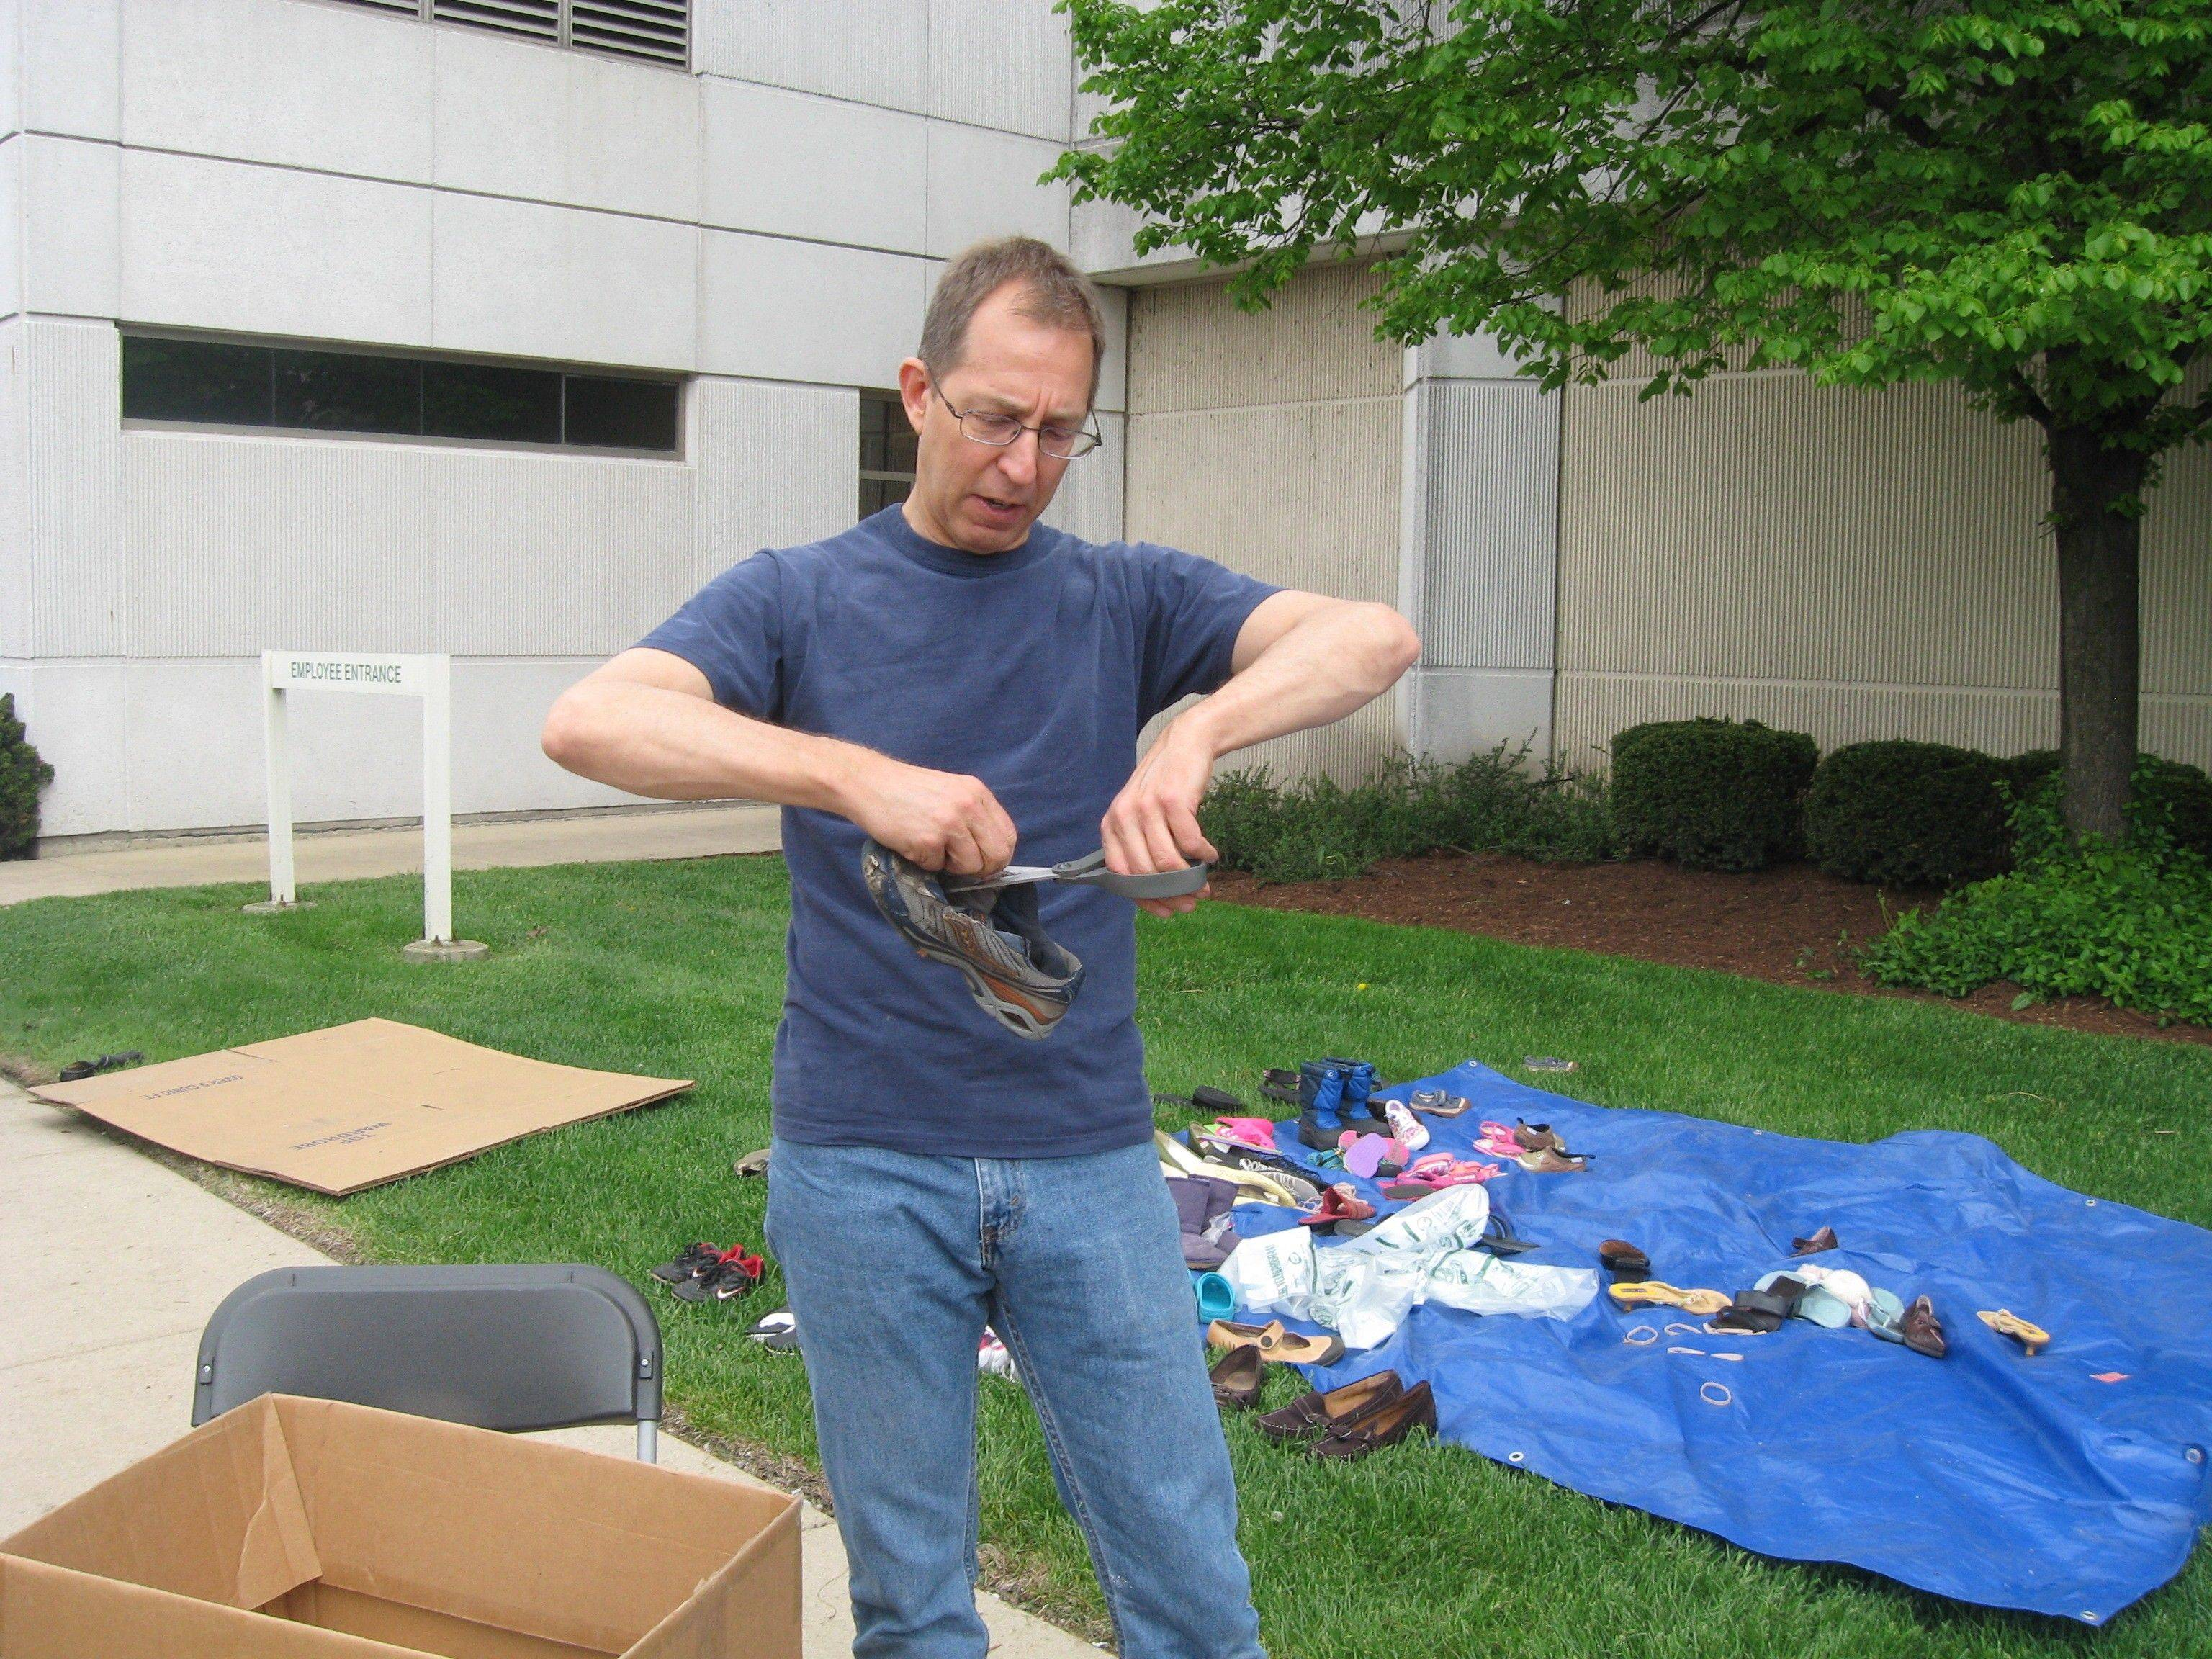 Volunteer Jim Valentine from Our Saviour's Lutheran Church in Arlington Heights cuts metal eyelets out of shoes that will go to Nike's RAS program.